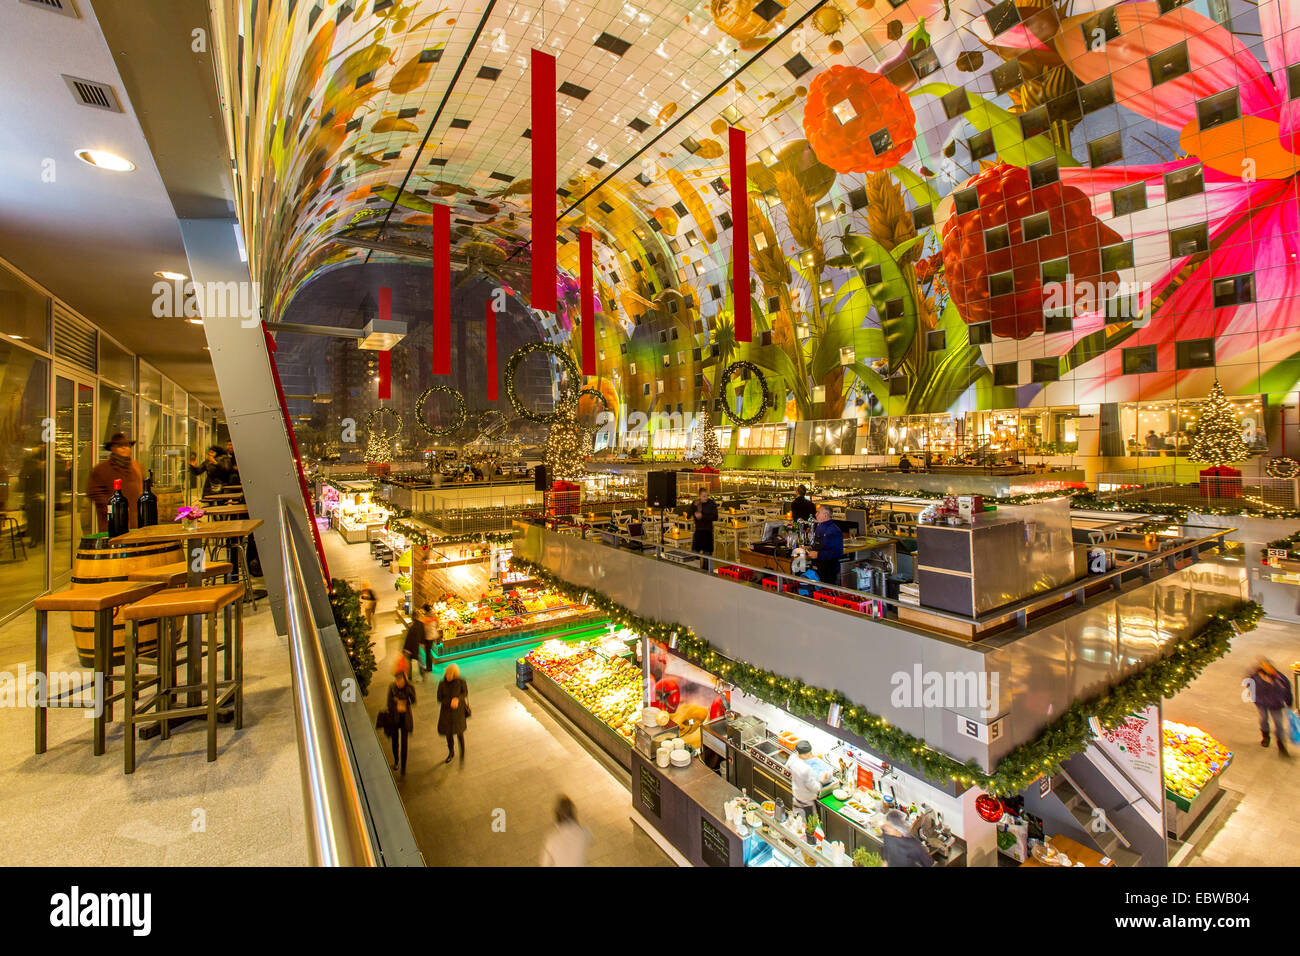 the new market hall in rotterdam restaurants food shops market stock photo 76160116 alamy. Black Bedroom Furniture Sets. Home Design Ideas